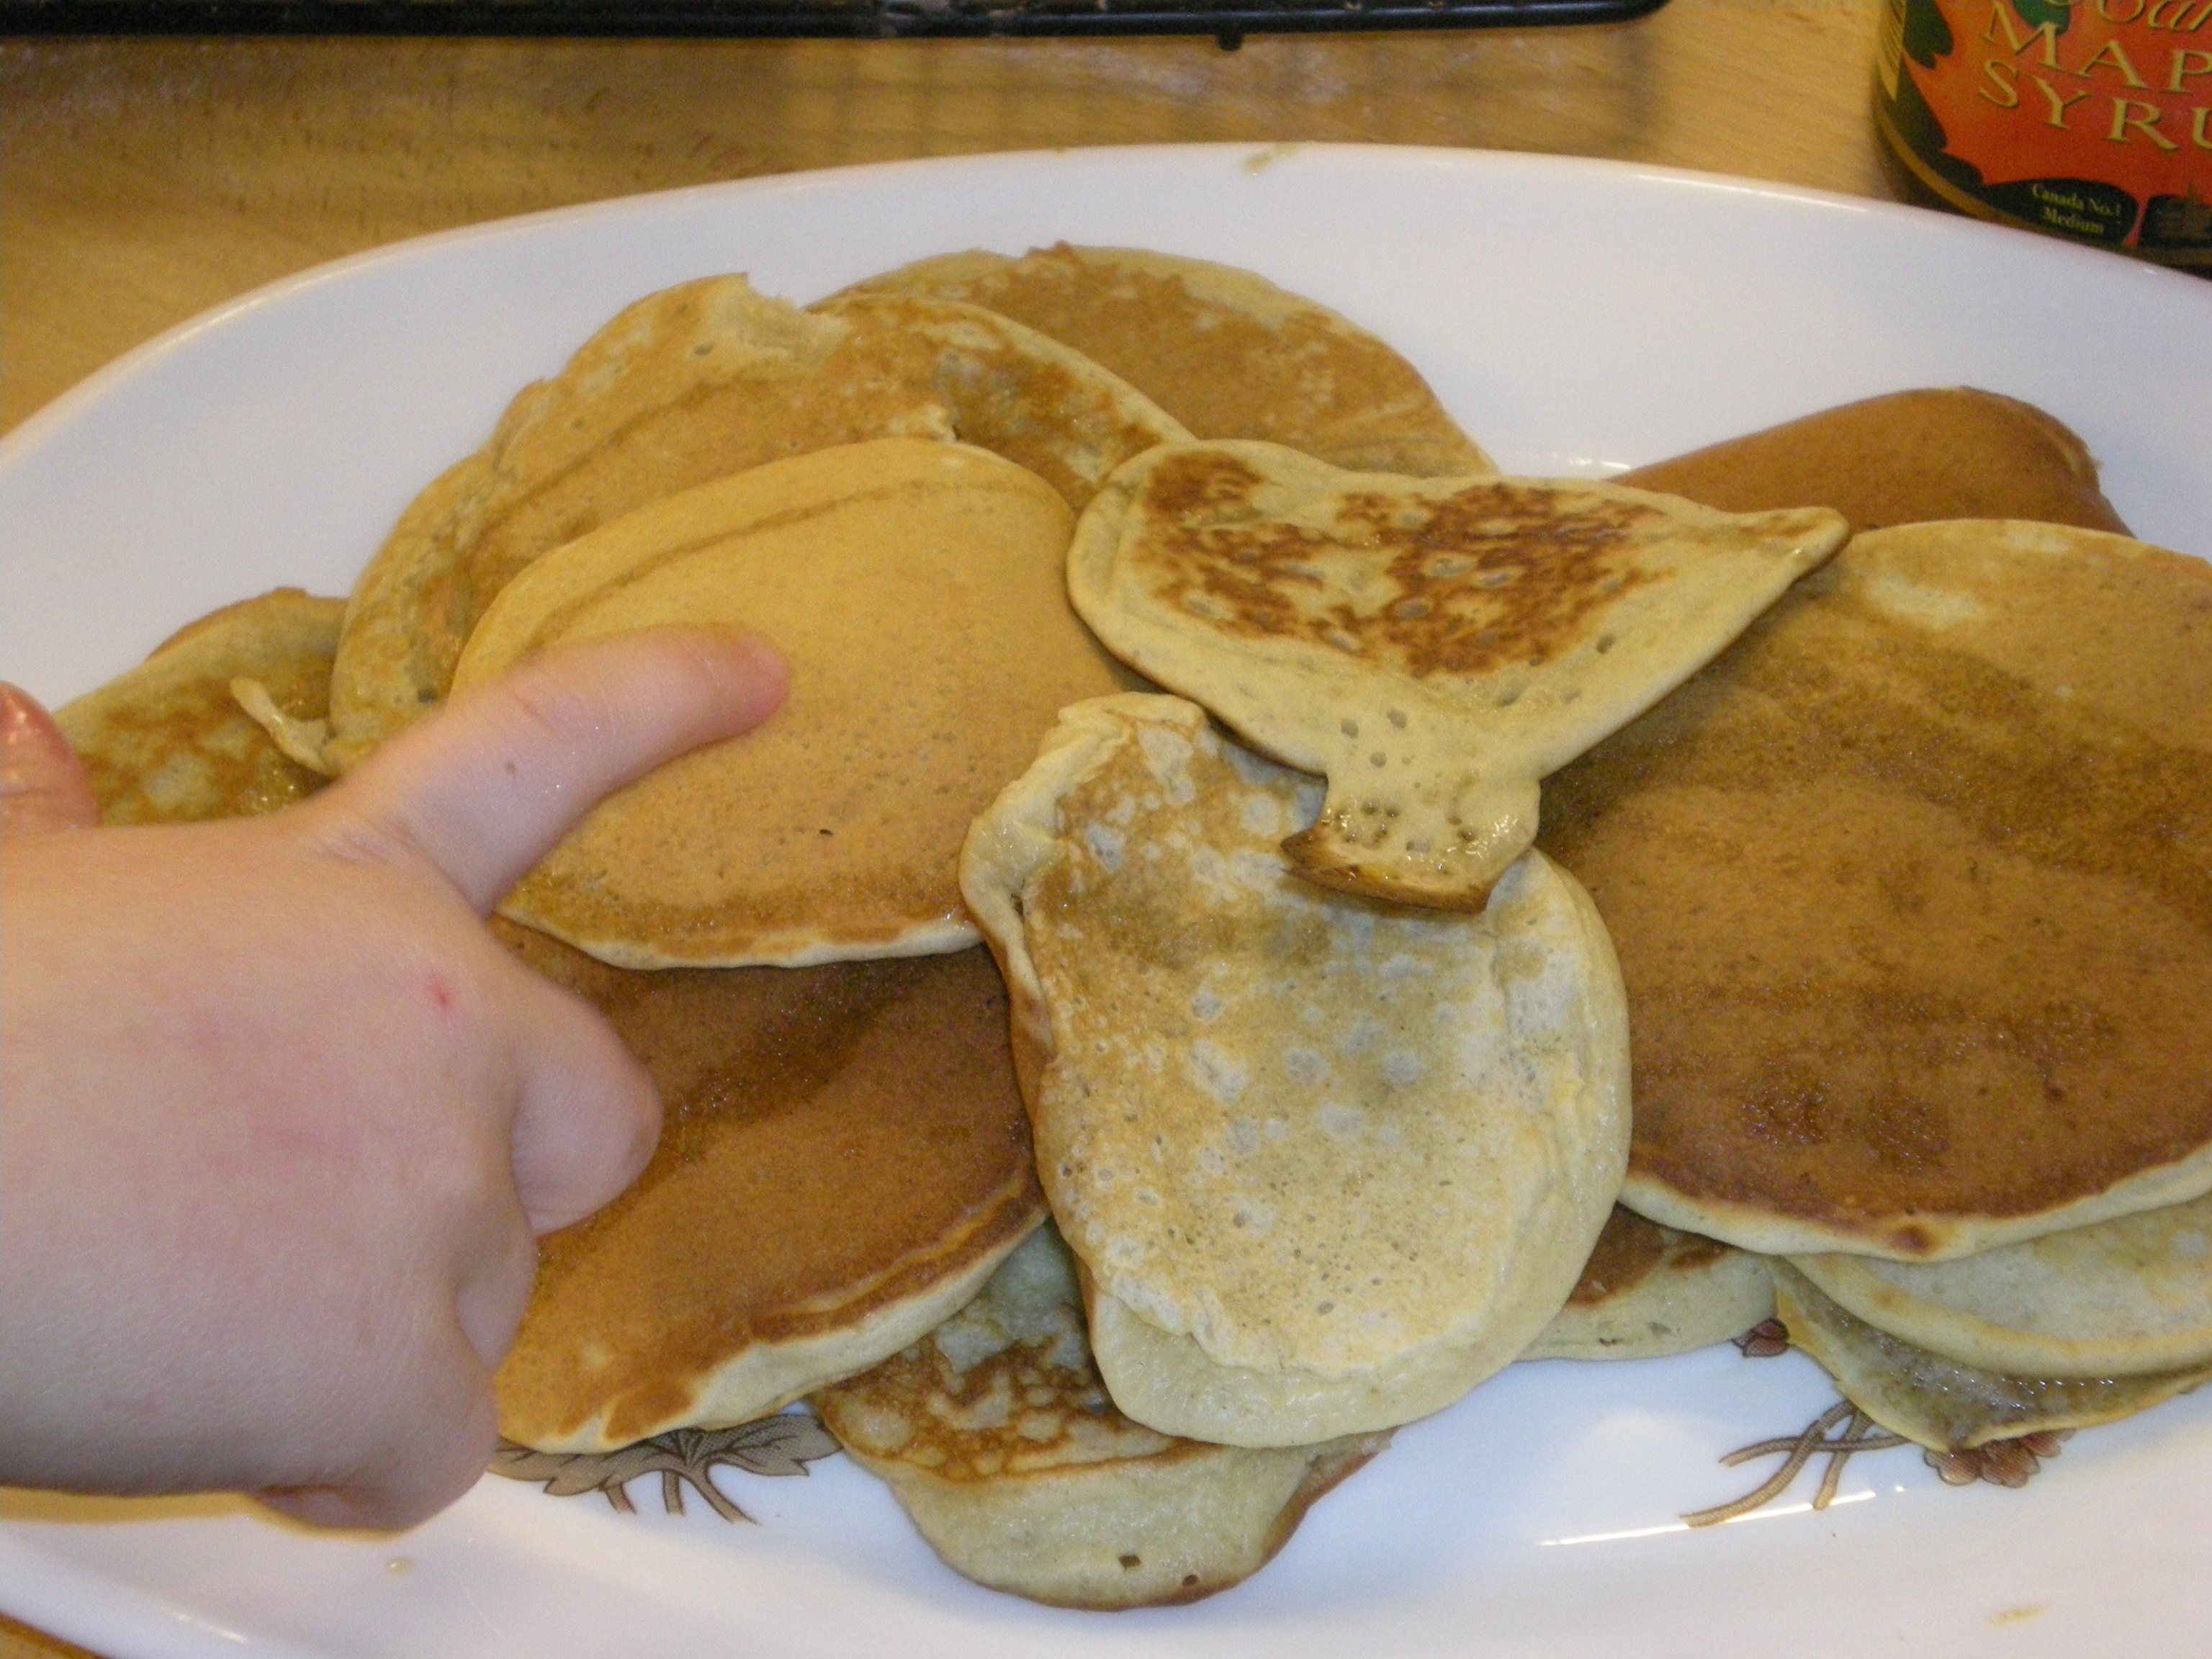 Rare shot of pancakes, normally they don't last long enough to be photgraphed